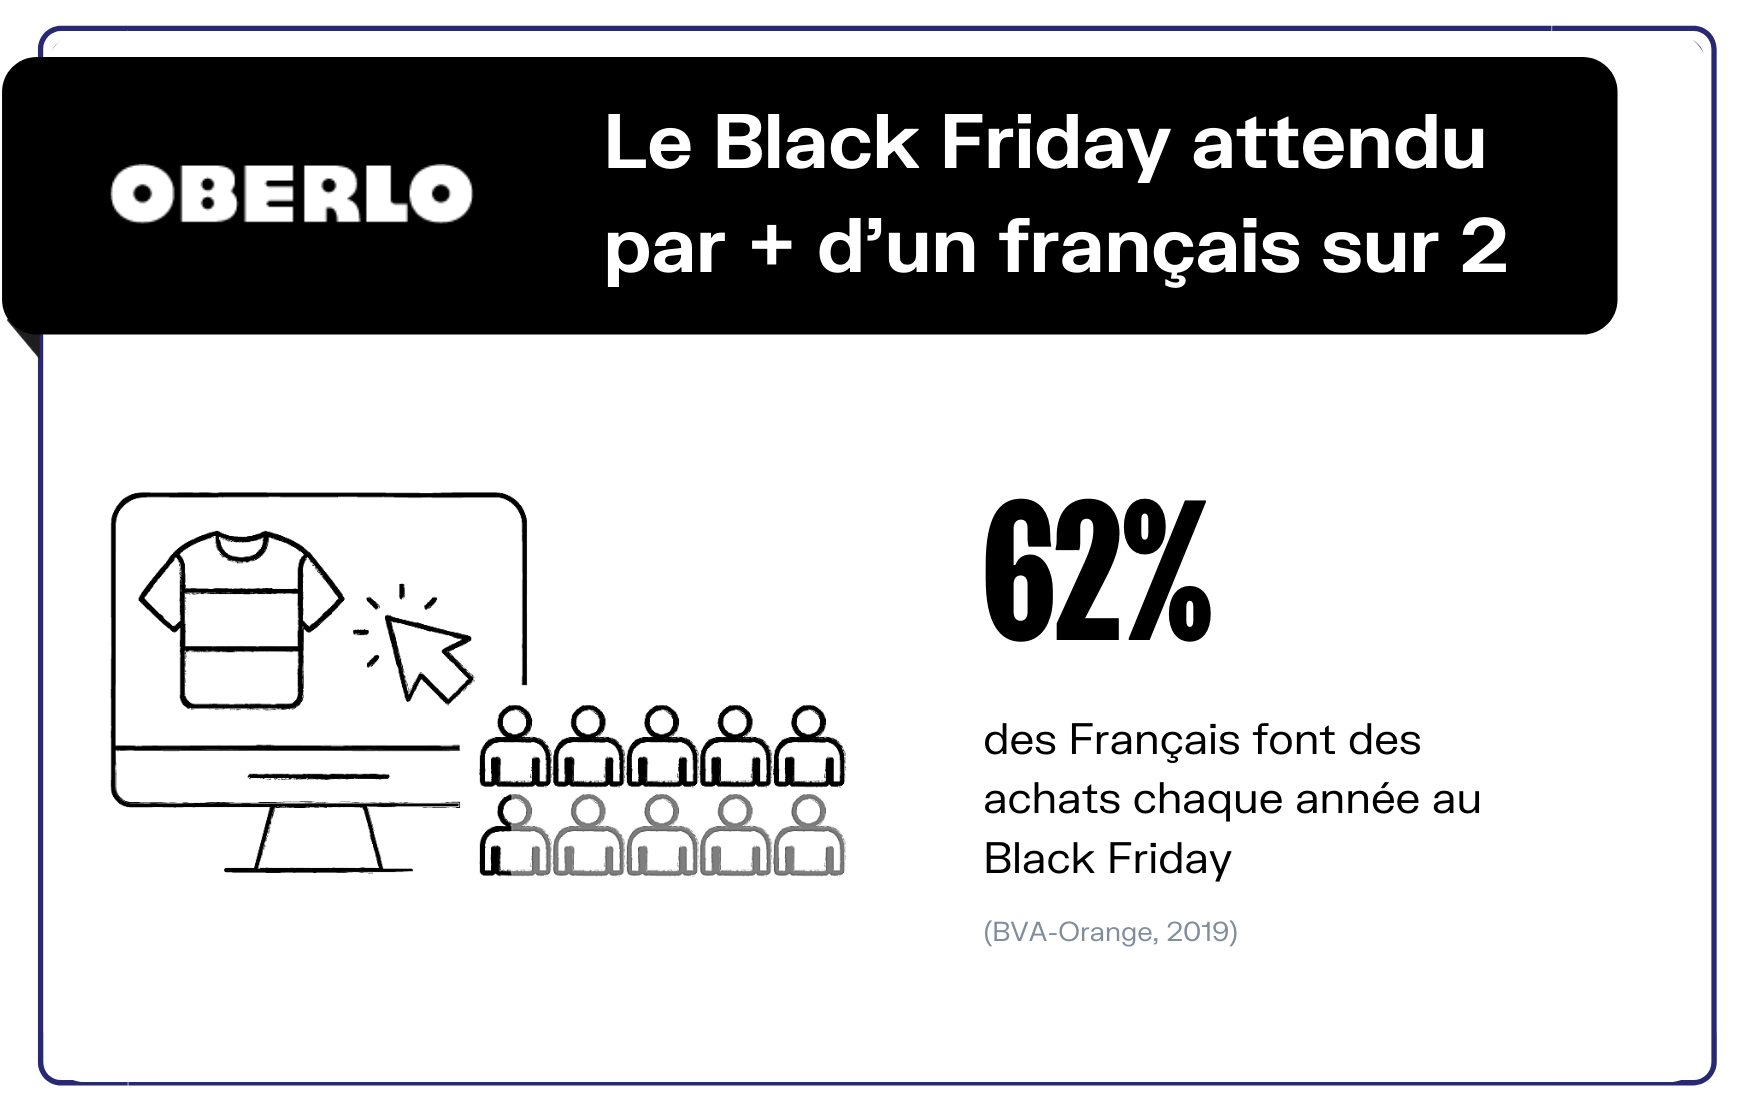 Black Friday France intentions d'achat